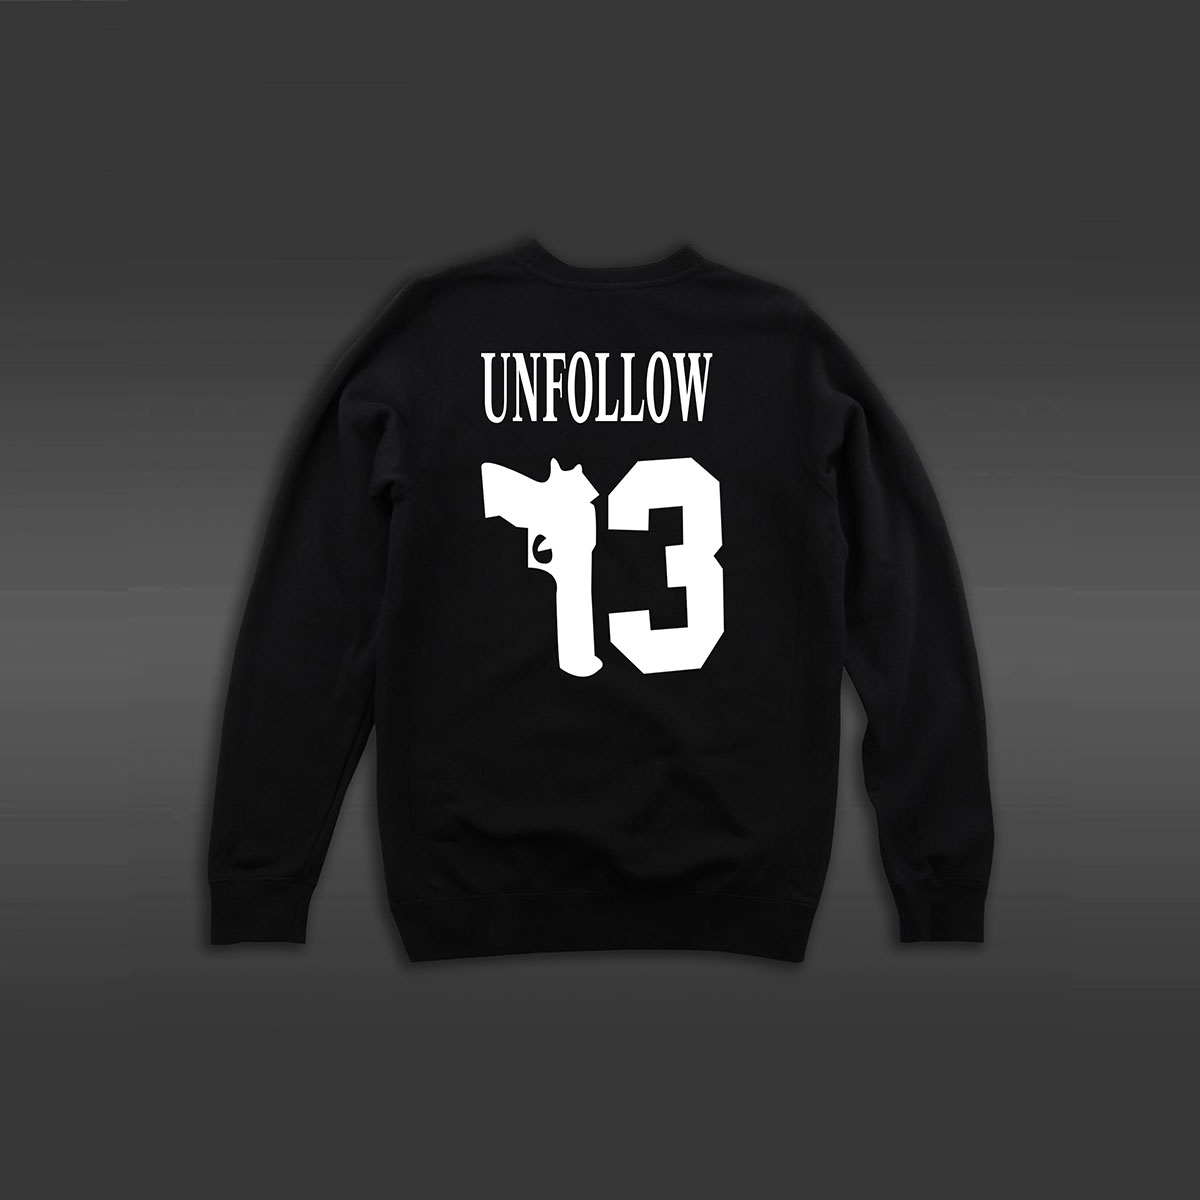 Unfollow Crew Neck Sweater - Black